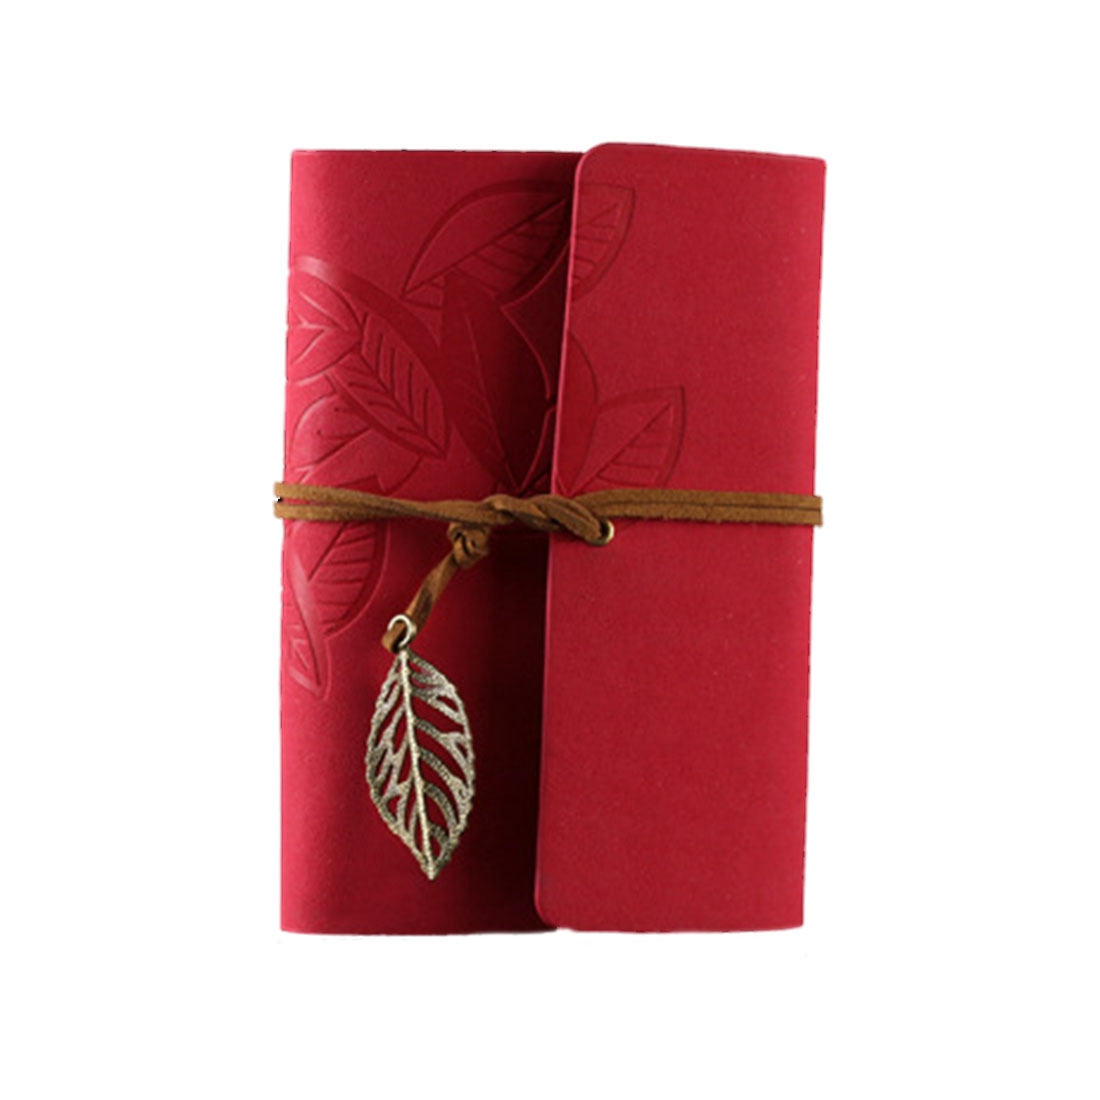 Vintage Leaf PU Leather Cover Loose Leaf Blank Notebook Journal Diary Gift (Rose red)